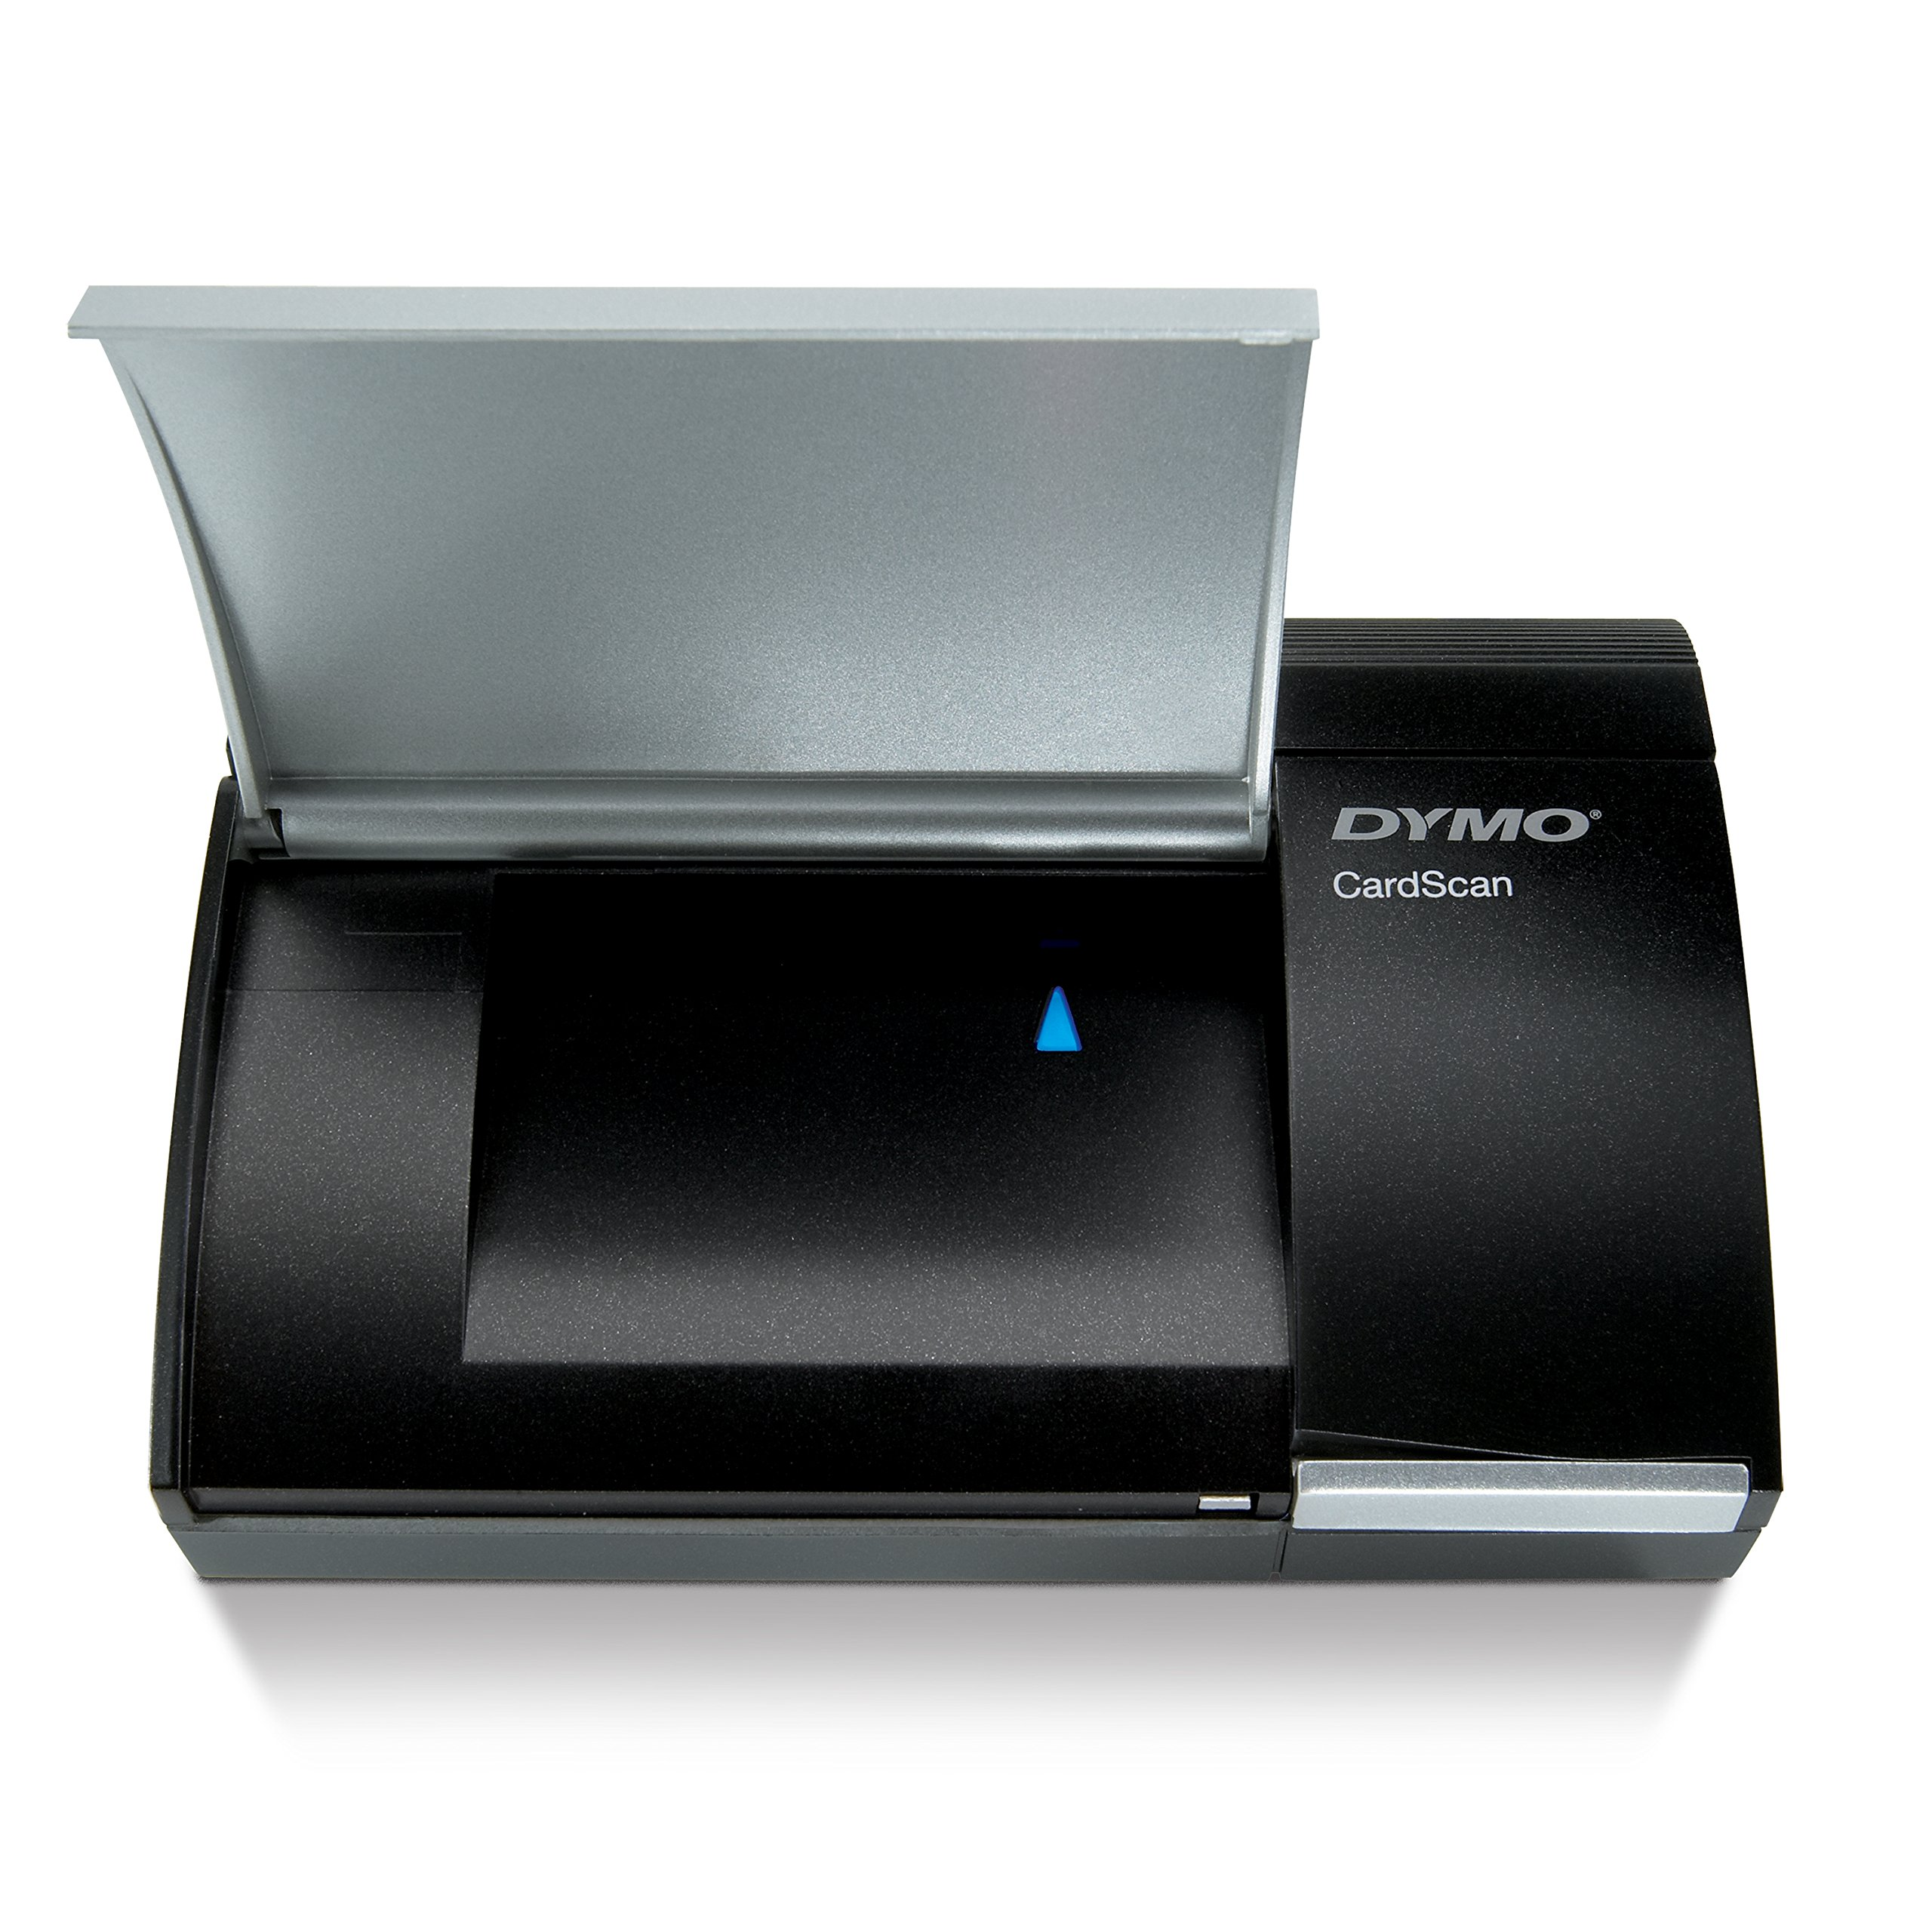 DYMO 1760685 CardScan Personal Card Scanner by DYMO (Image #2)